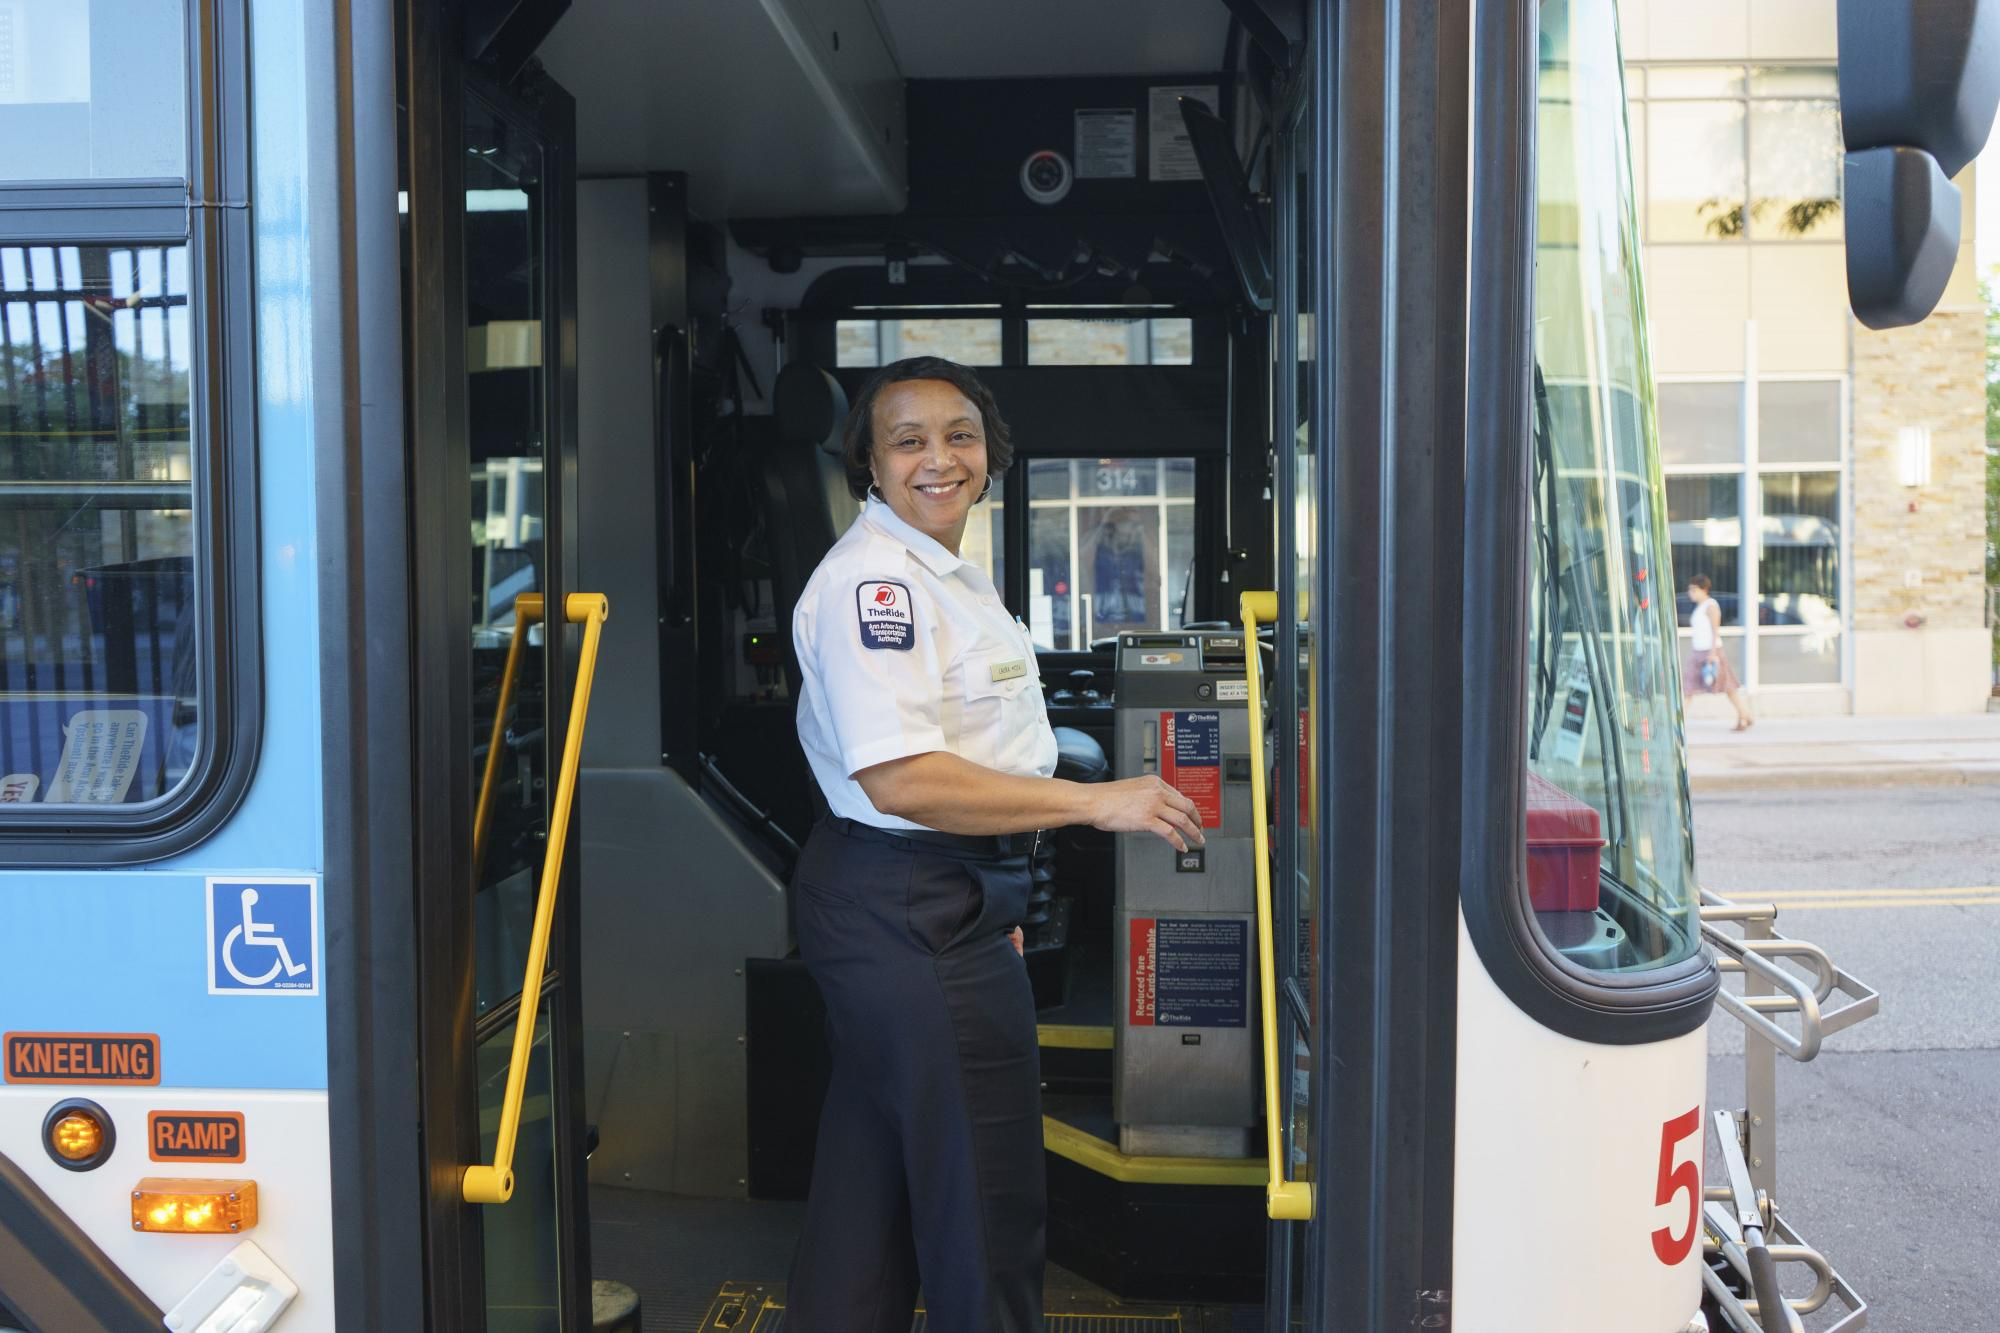 A bus driver gets ready to board her bus for her shift.